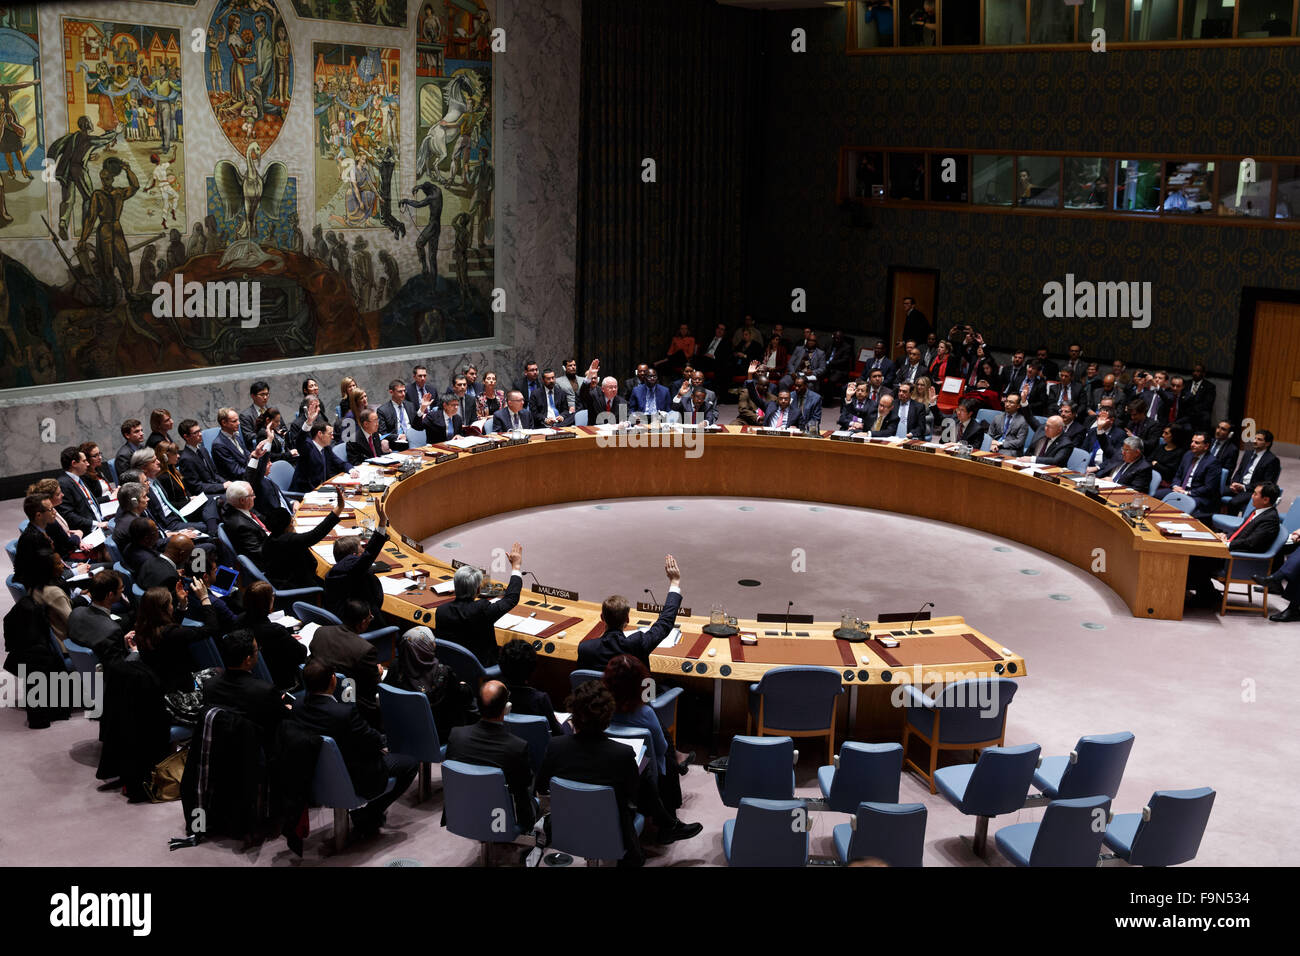 New York, USA. 17th Dec, 2015. Photo taken on Dec. 17, 2015 shows the UN Security Council unanimously adopting a Stock Photo